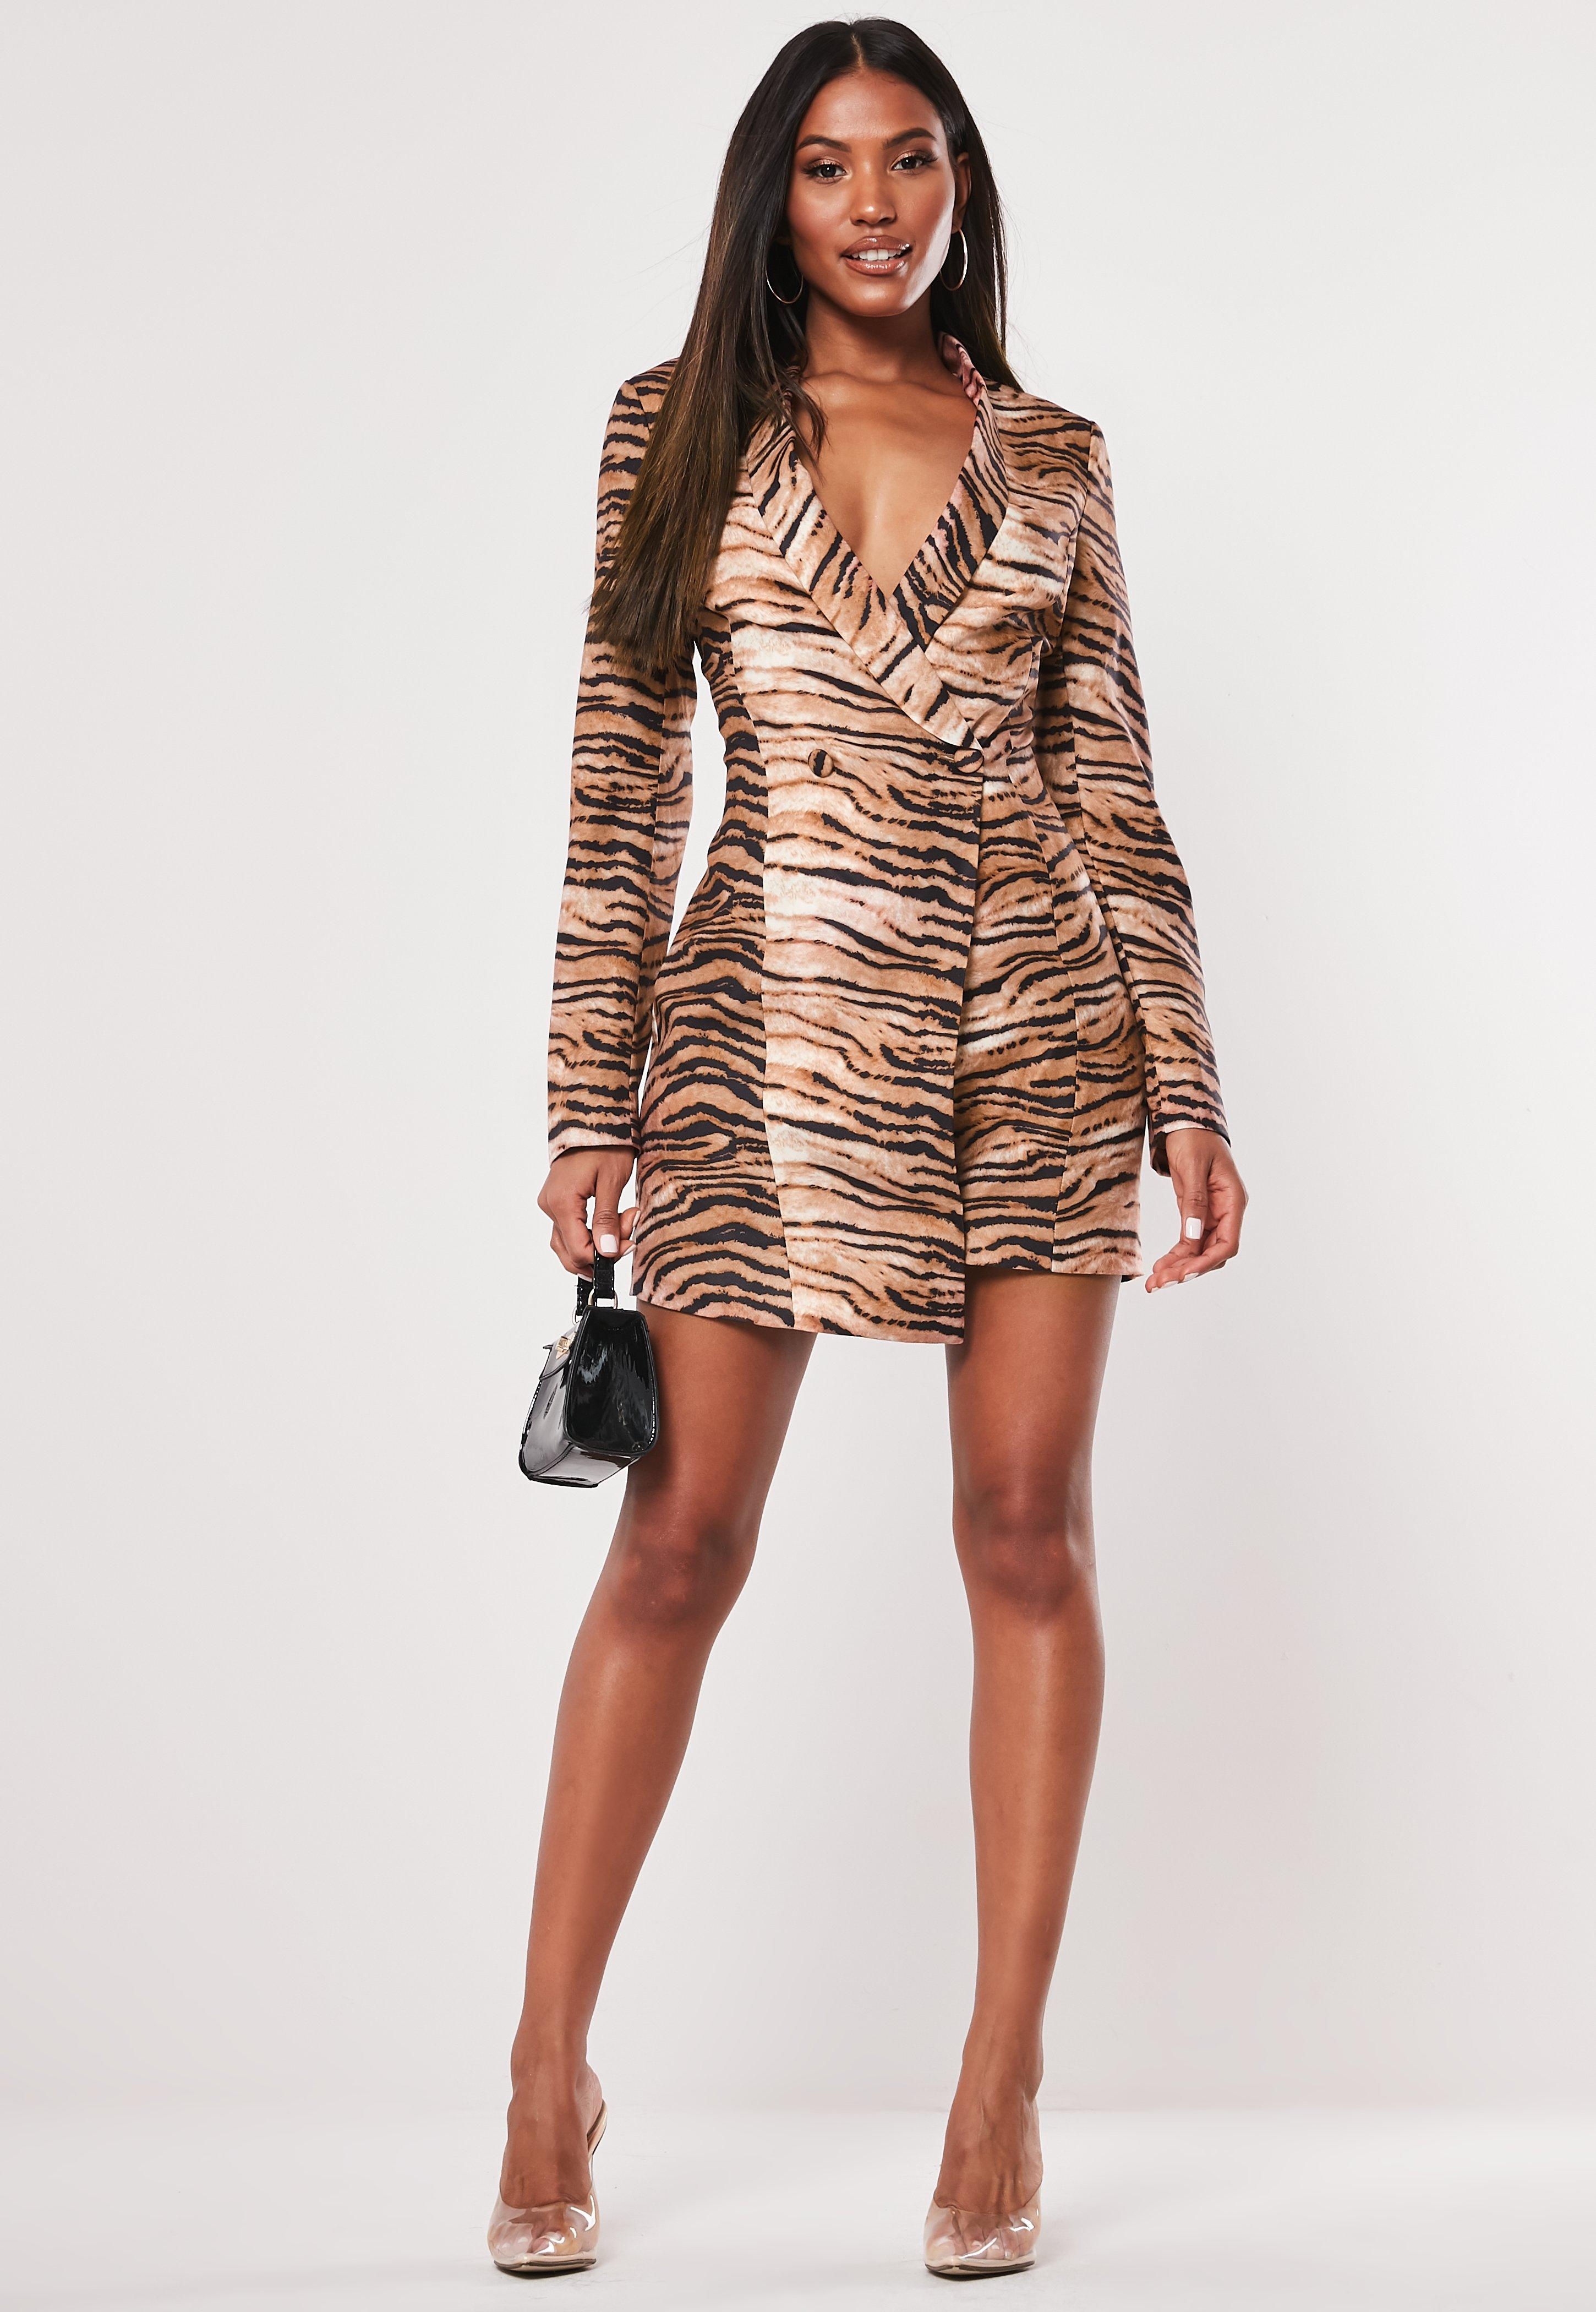 468d4e77e076c0 Animal Print Clothing